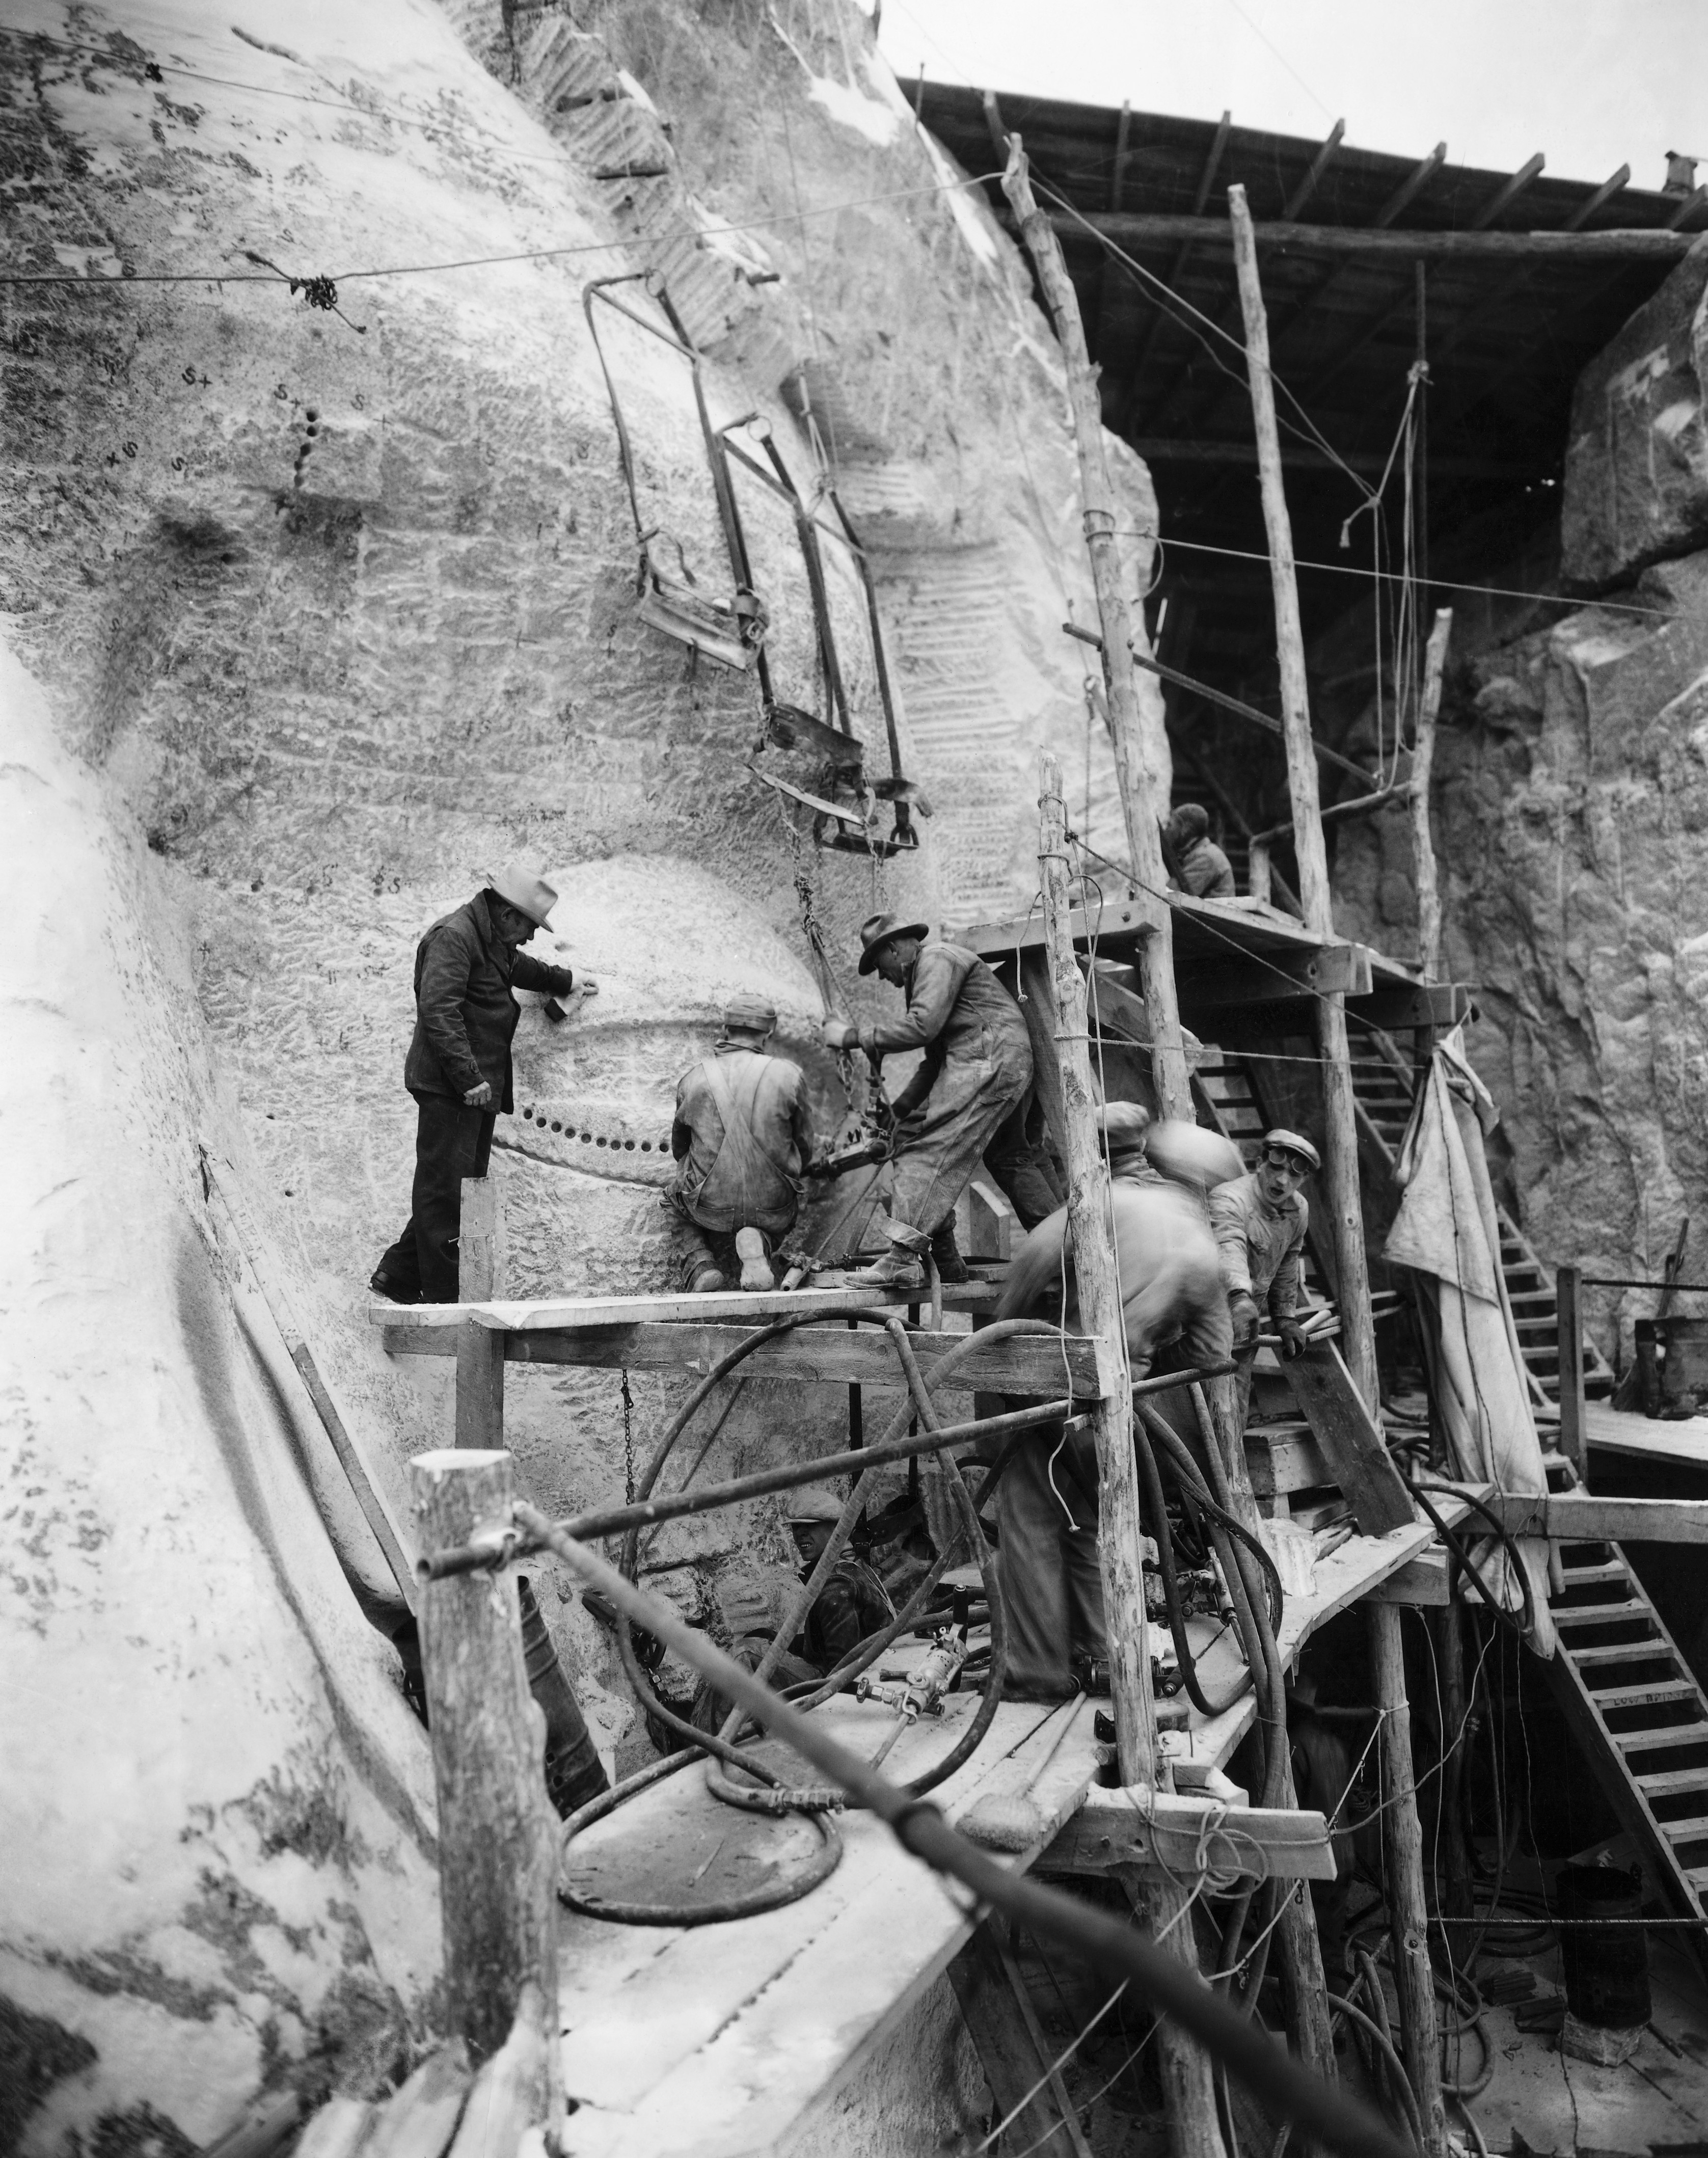 Oculists  at work on Jefferson's eye while Gutzon Borglum inspects the operation in the Black Hills area of Keystone, S.D., circa 1930s.